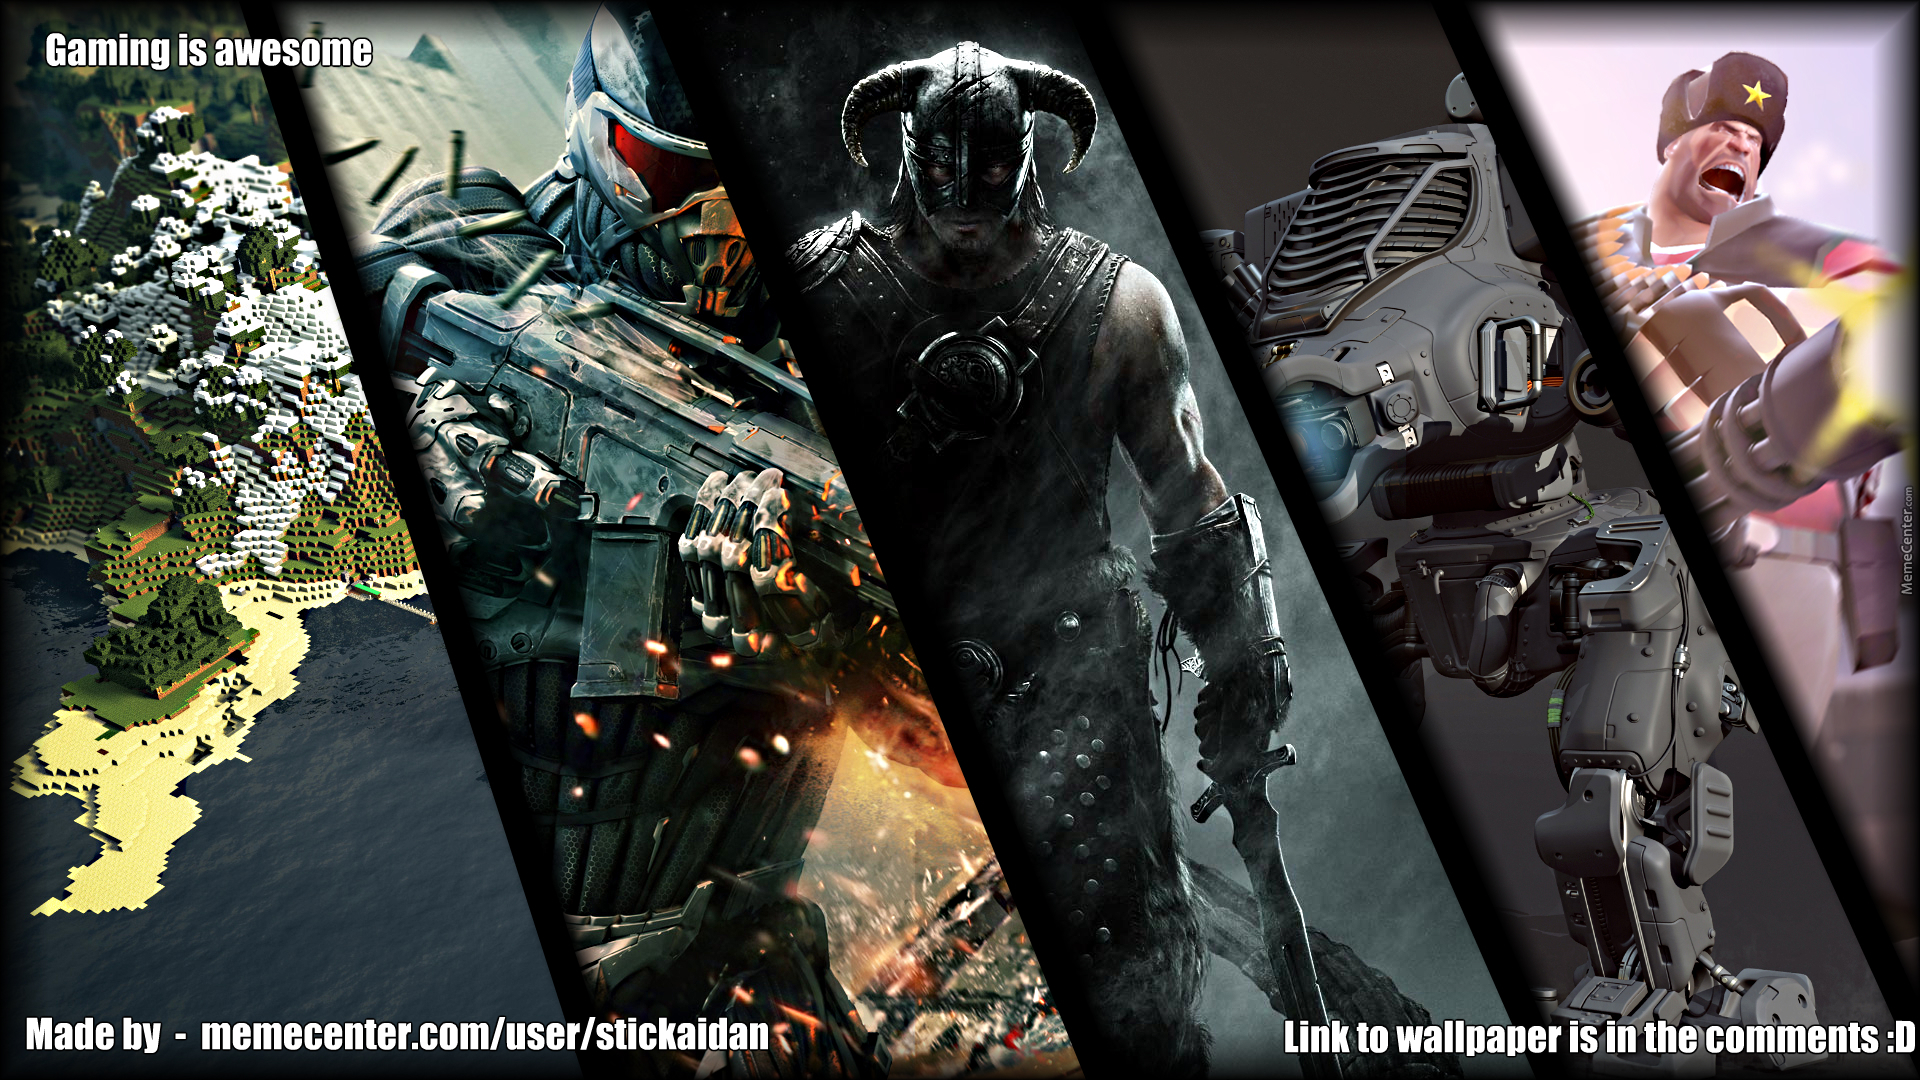 Awesome Video Game Desktop Backgrounds , HD Wallpaper & Backgrounds